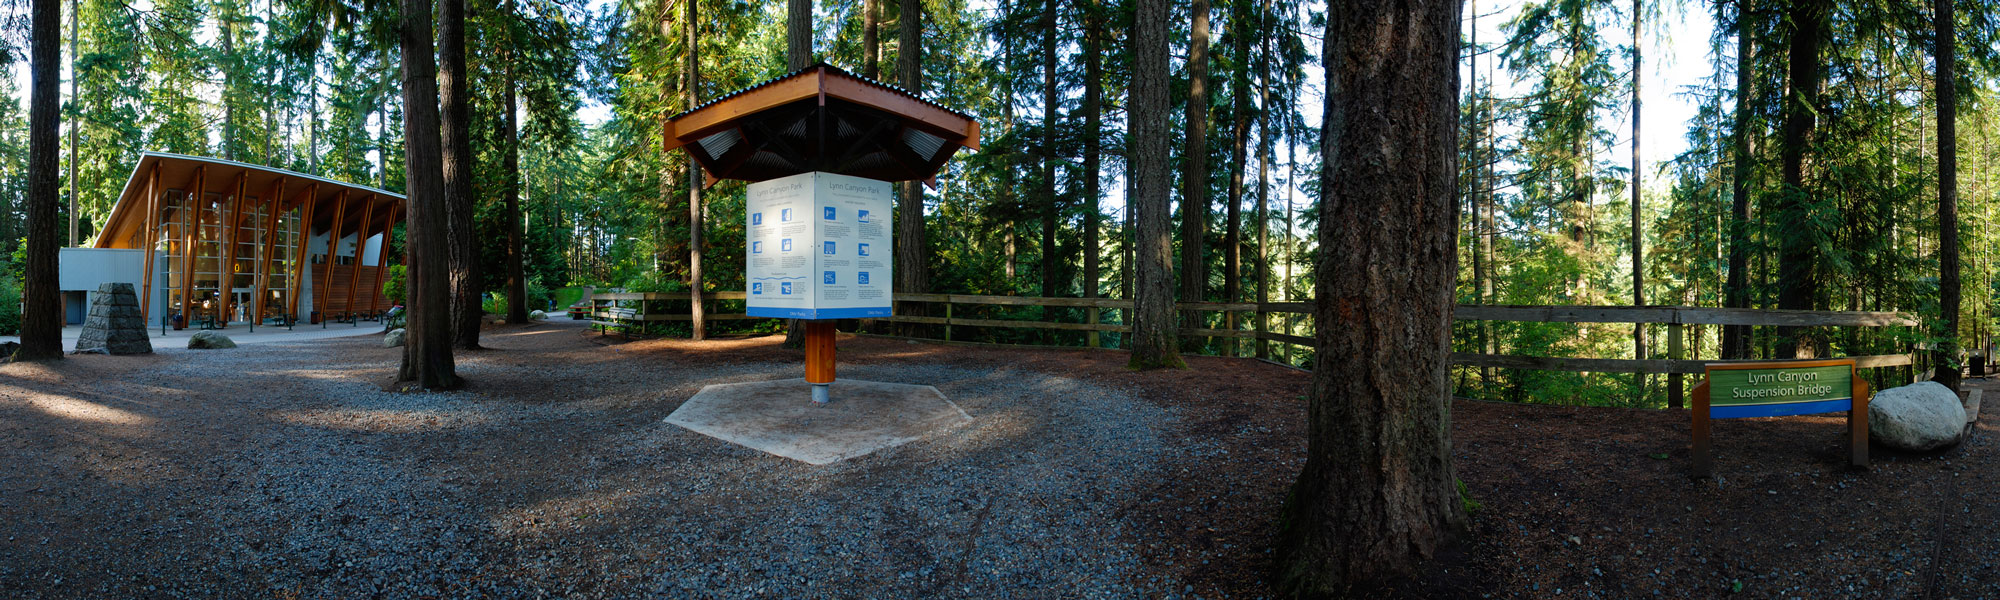 Lynn Canyon Park Entrance